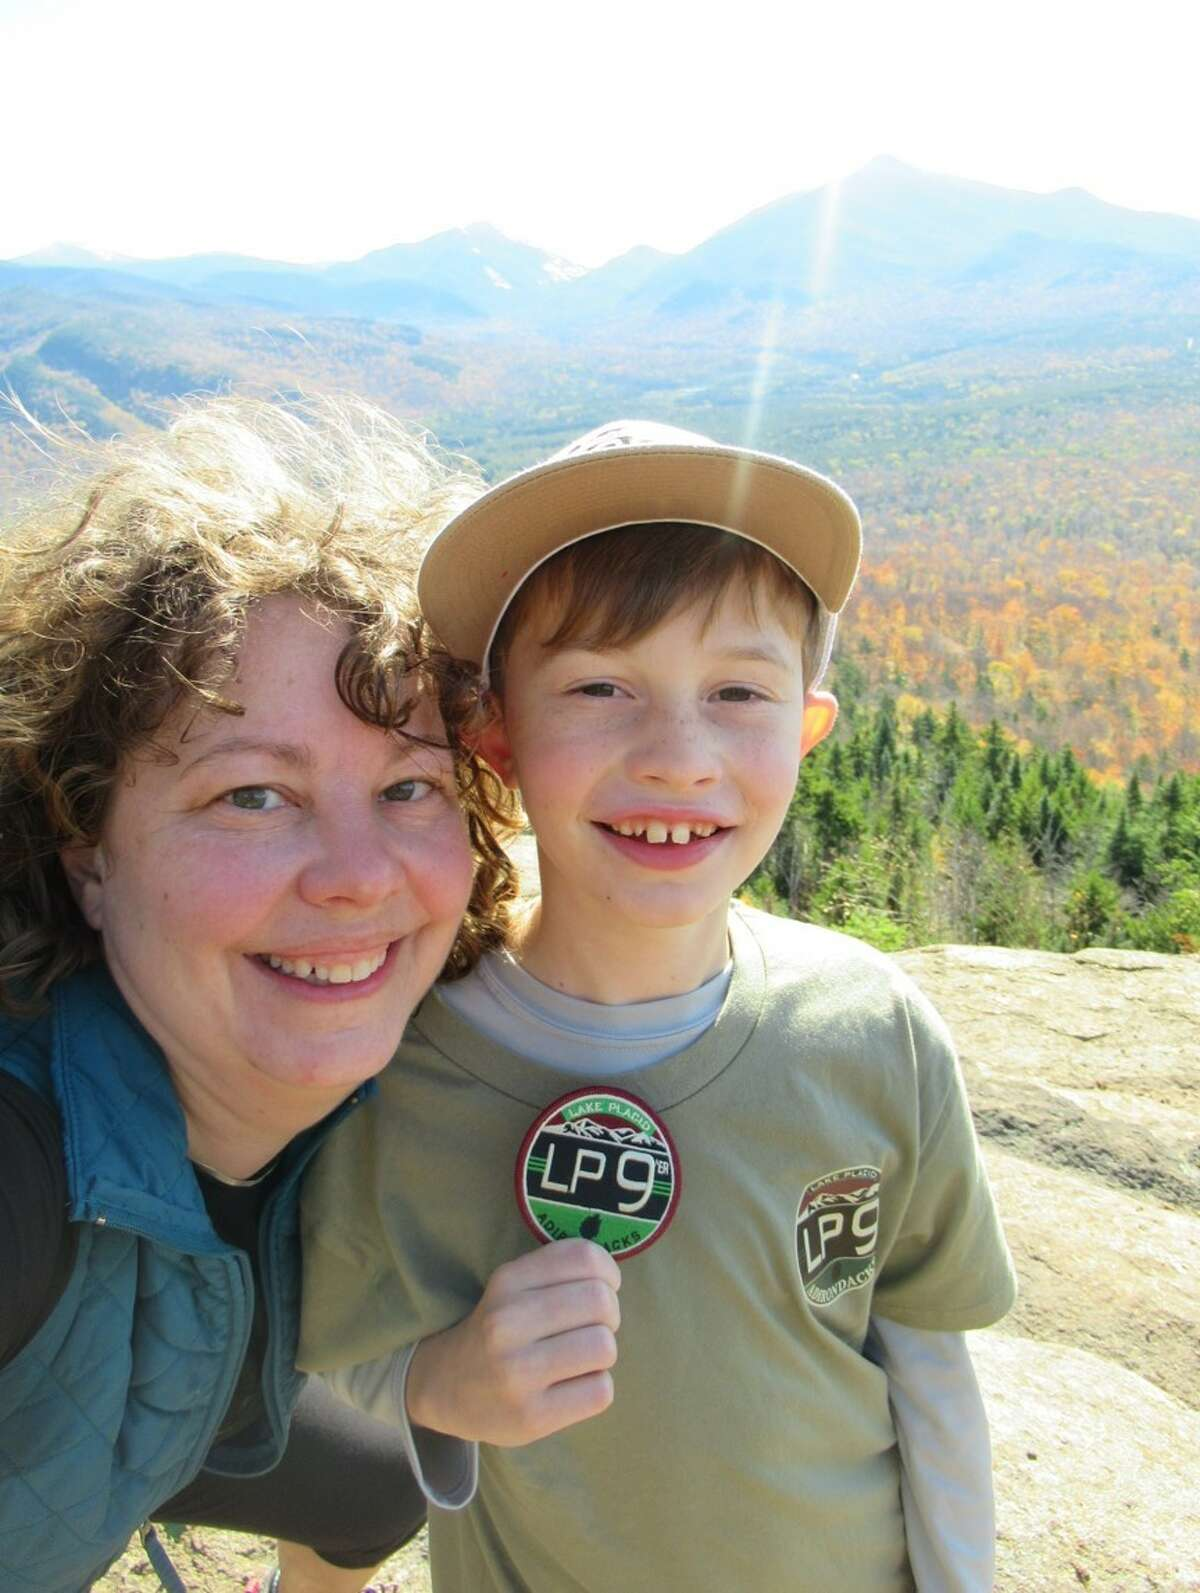 Maryellen and Jesse Eyer of Clifton Park recently completed the Lake Placid 9'er hiking challenge together. Maryellen says the time spent with her son deepened their connection. (Contributed photo.)